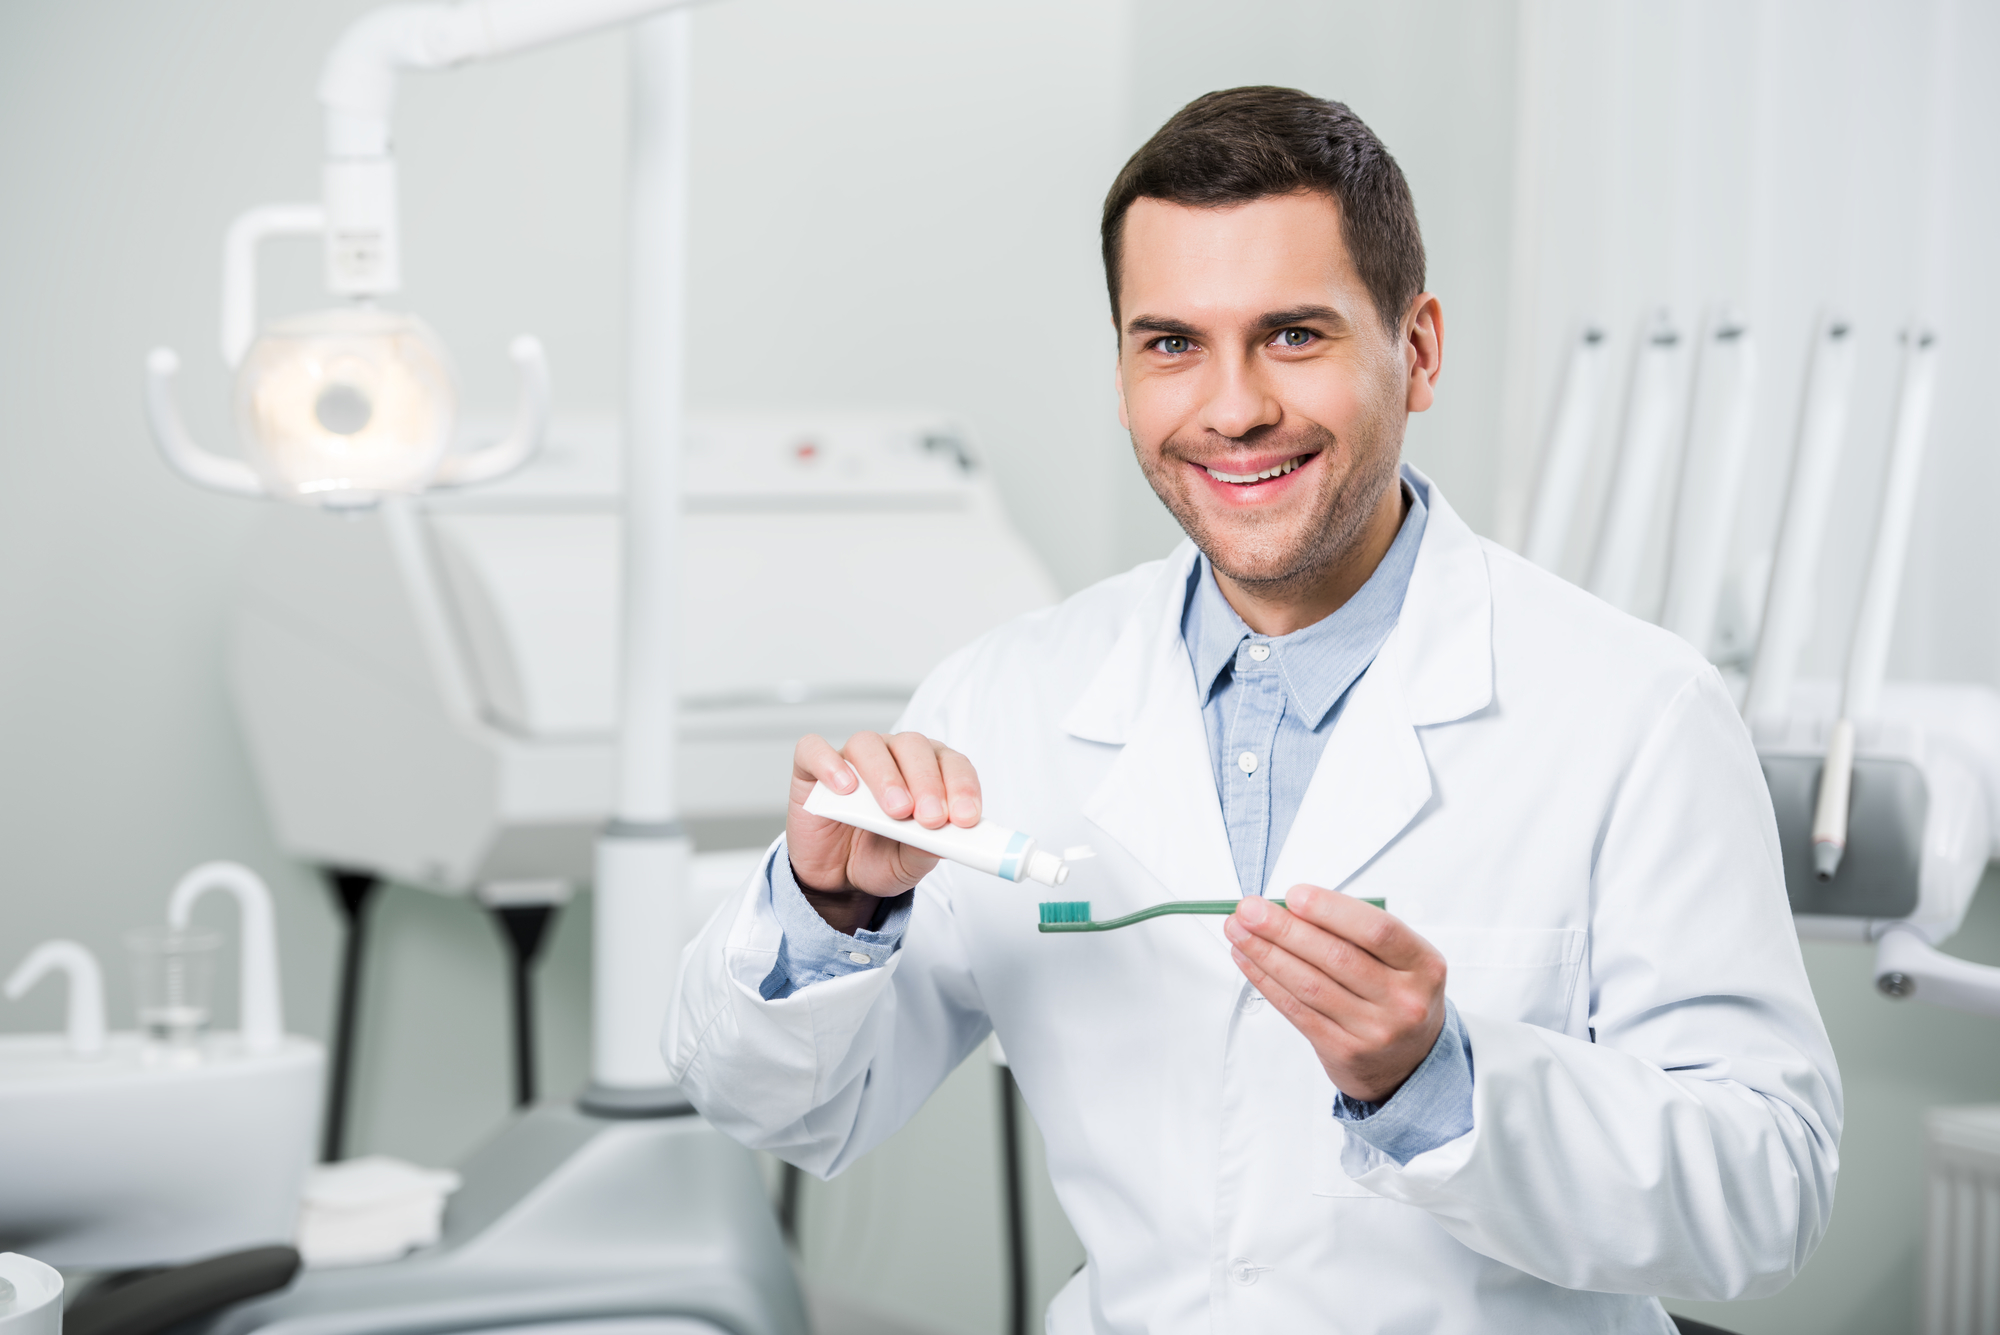 who offers oral surgery greenville sc?